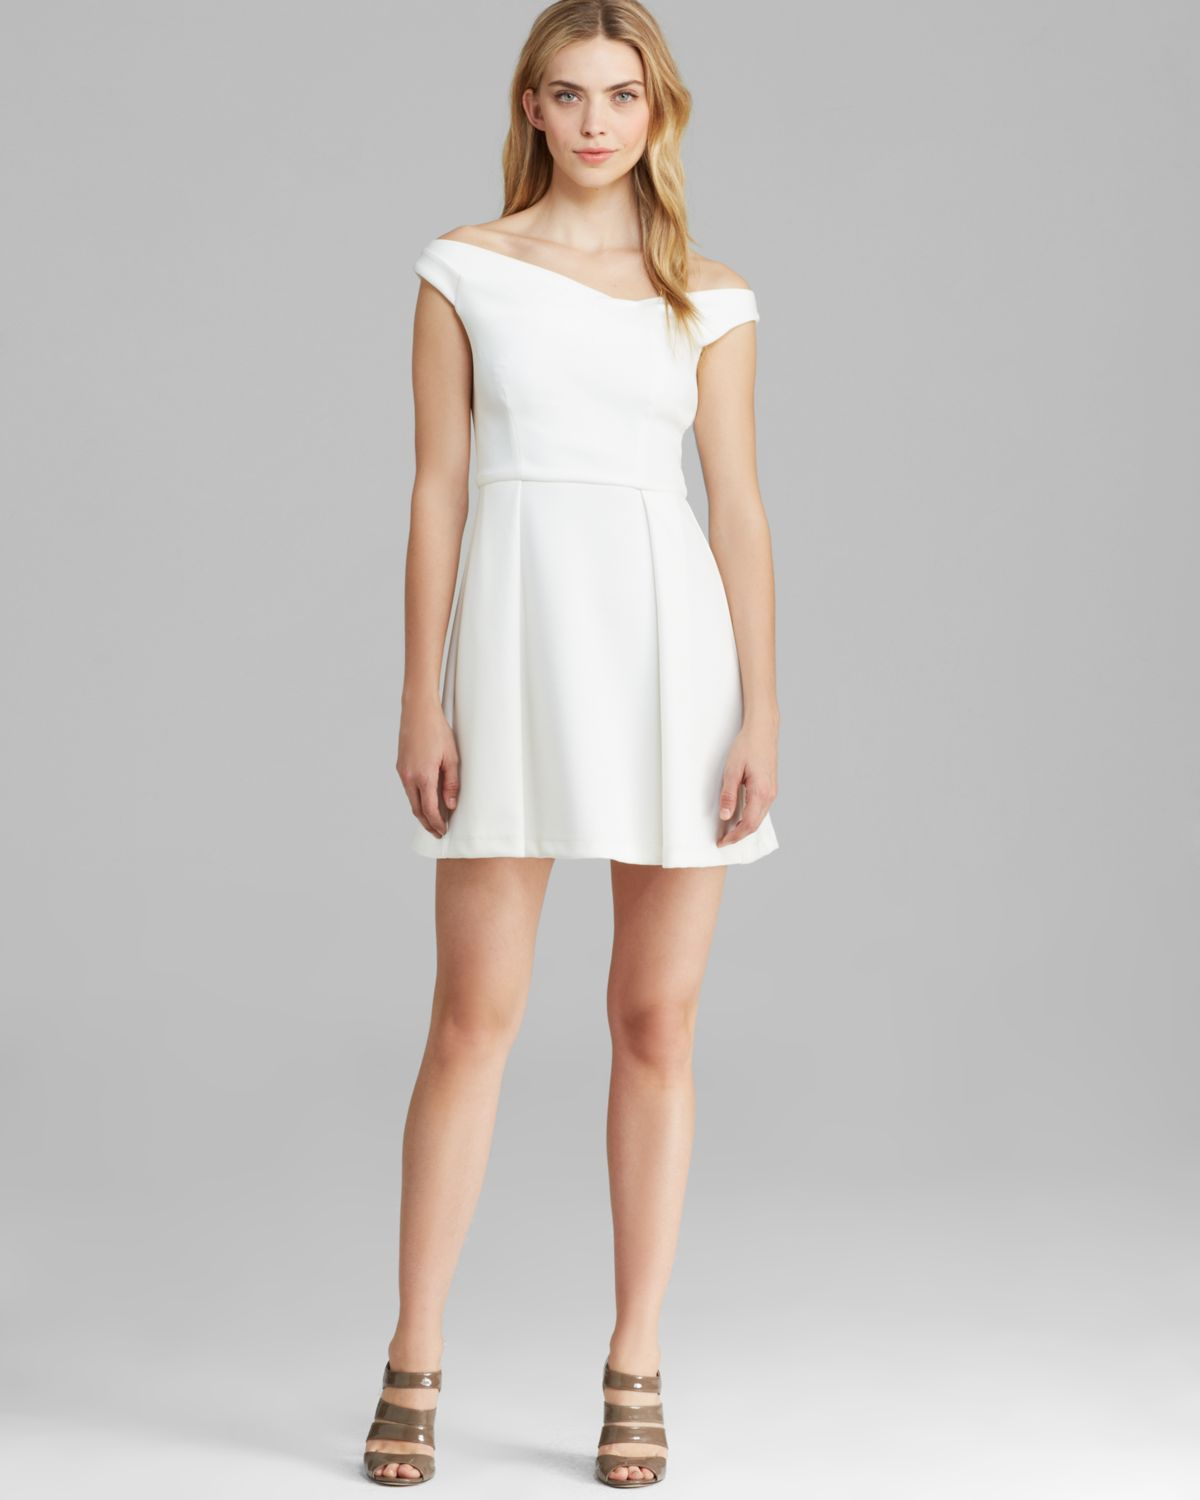 Black halo Dress - Sierra Mini Neoprene in White | Lyst